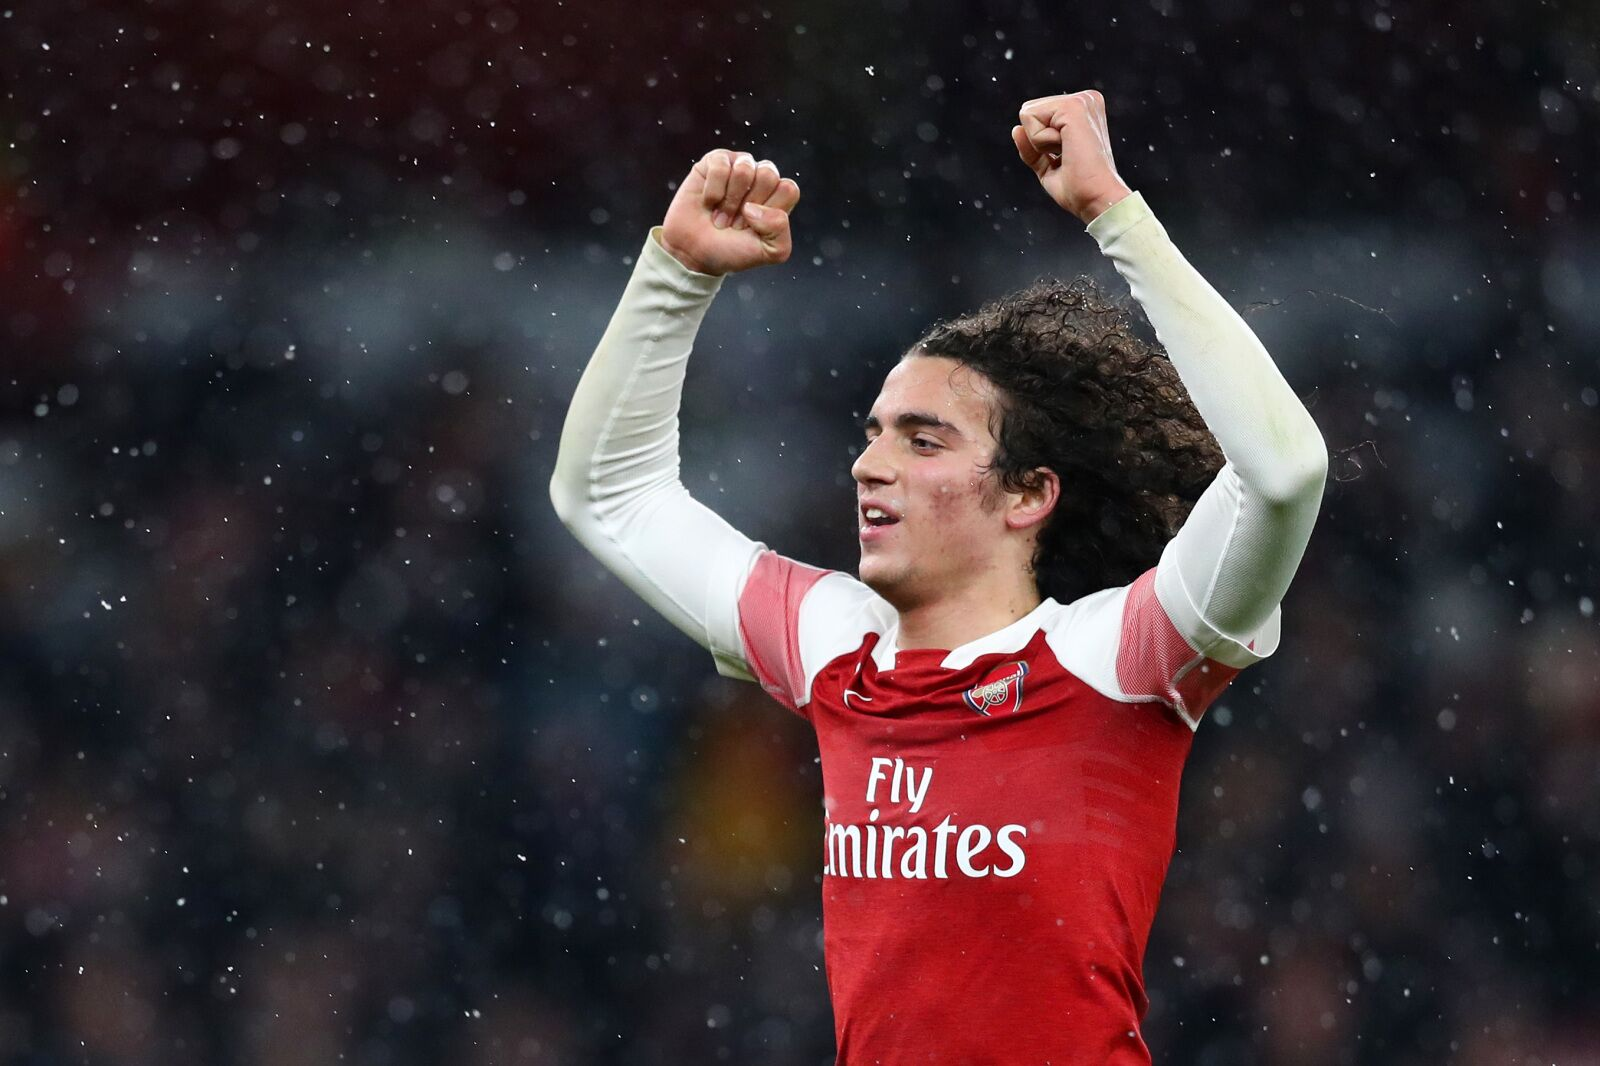 Arsenal: Matteo Guendouzi changed everything at this club